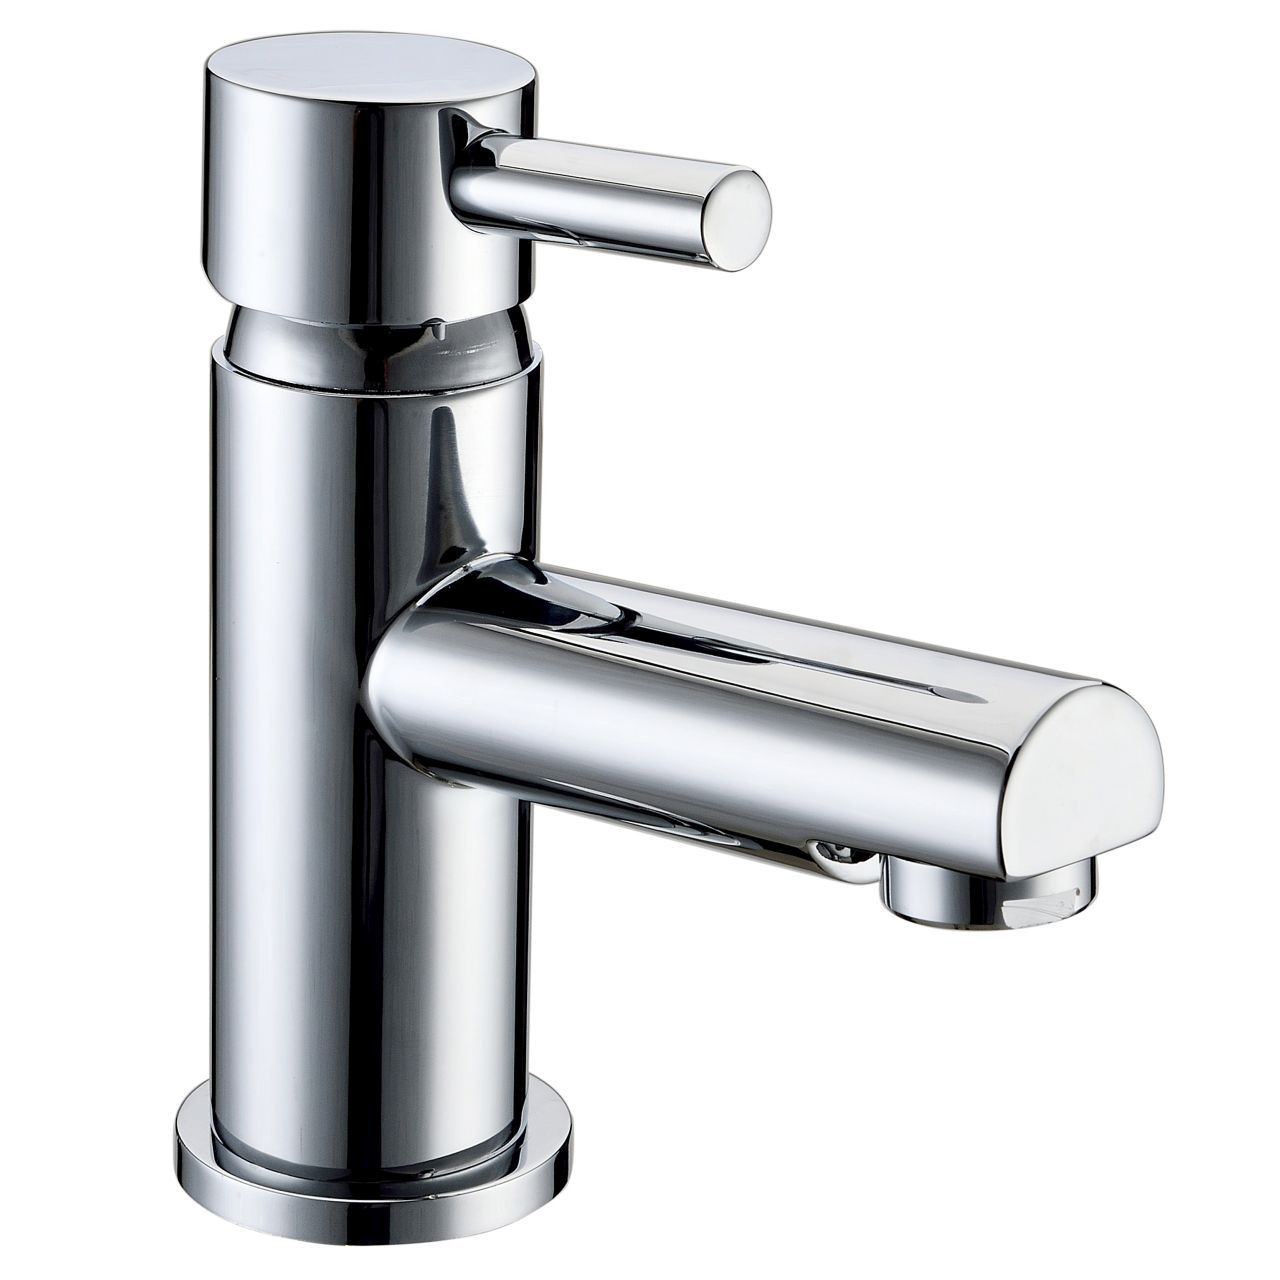 RAK Prima Mono Basin Mixer Tap with Clicker Waste - RAKPRI3001